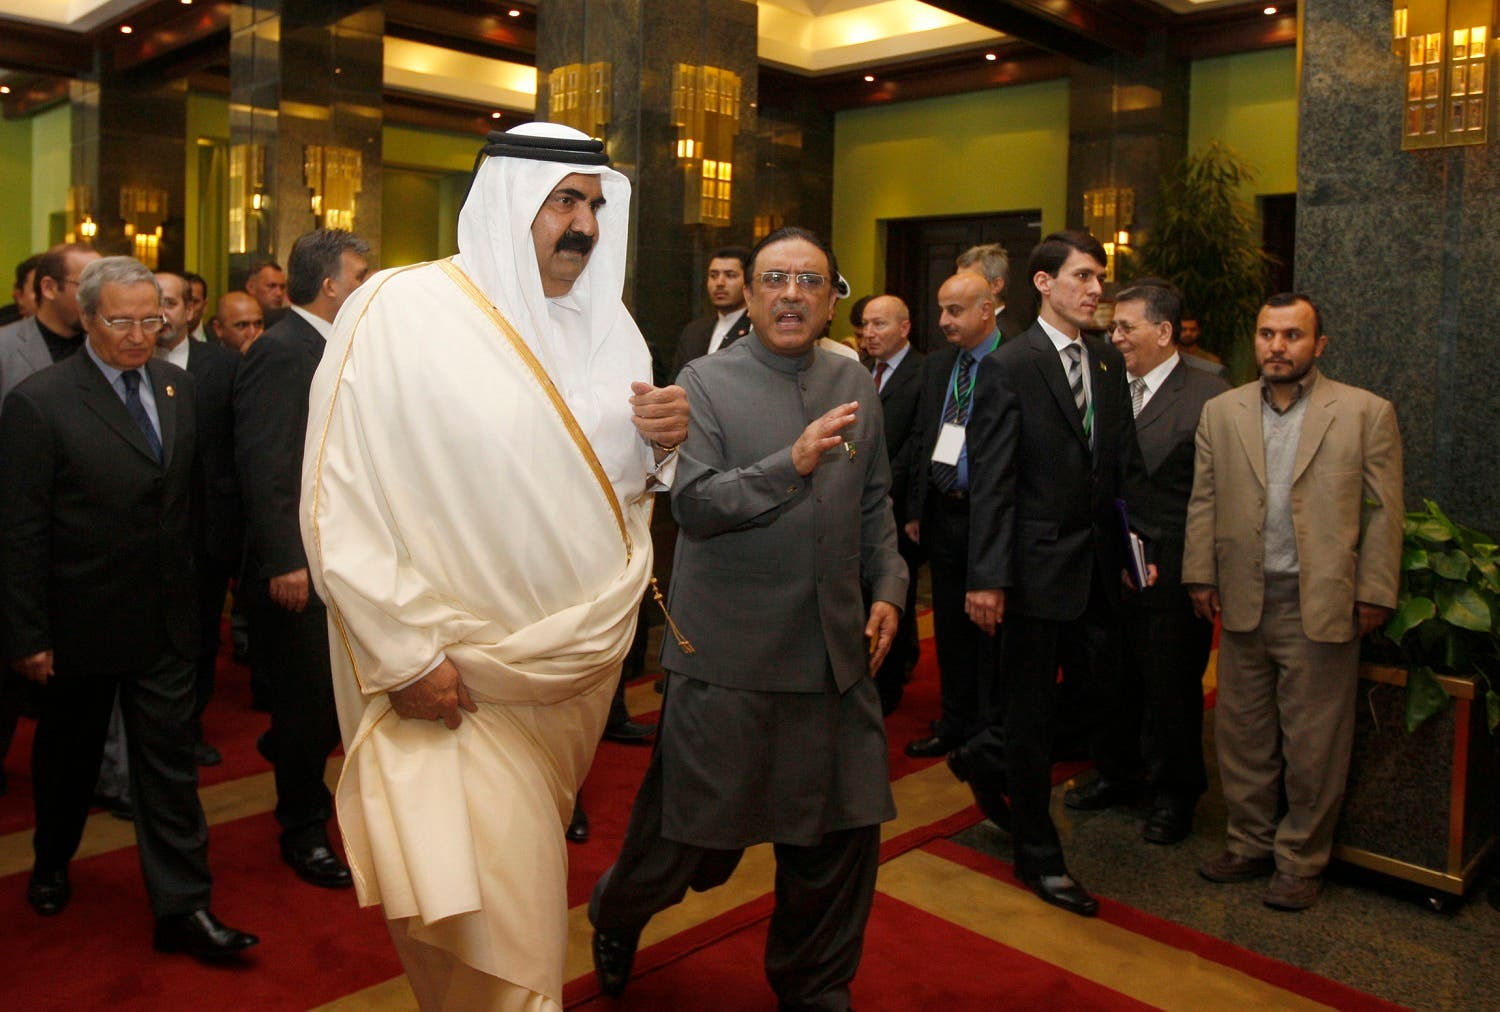 Sheikh Hamad bin Khalifa al Thani with the then Pakistani President Asif Ali Zardari, in Tehran, on March 11, 2009. (AP)